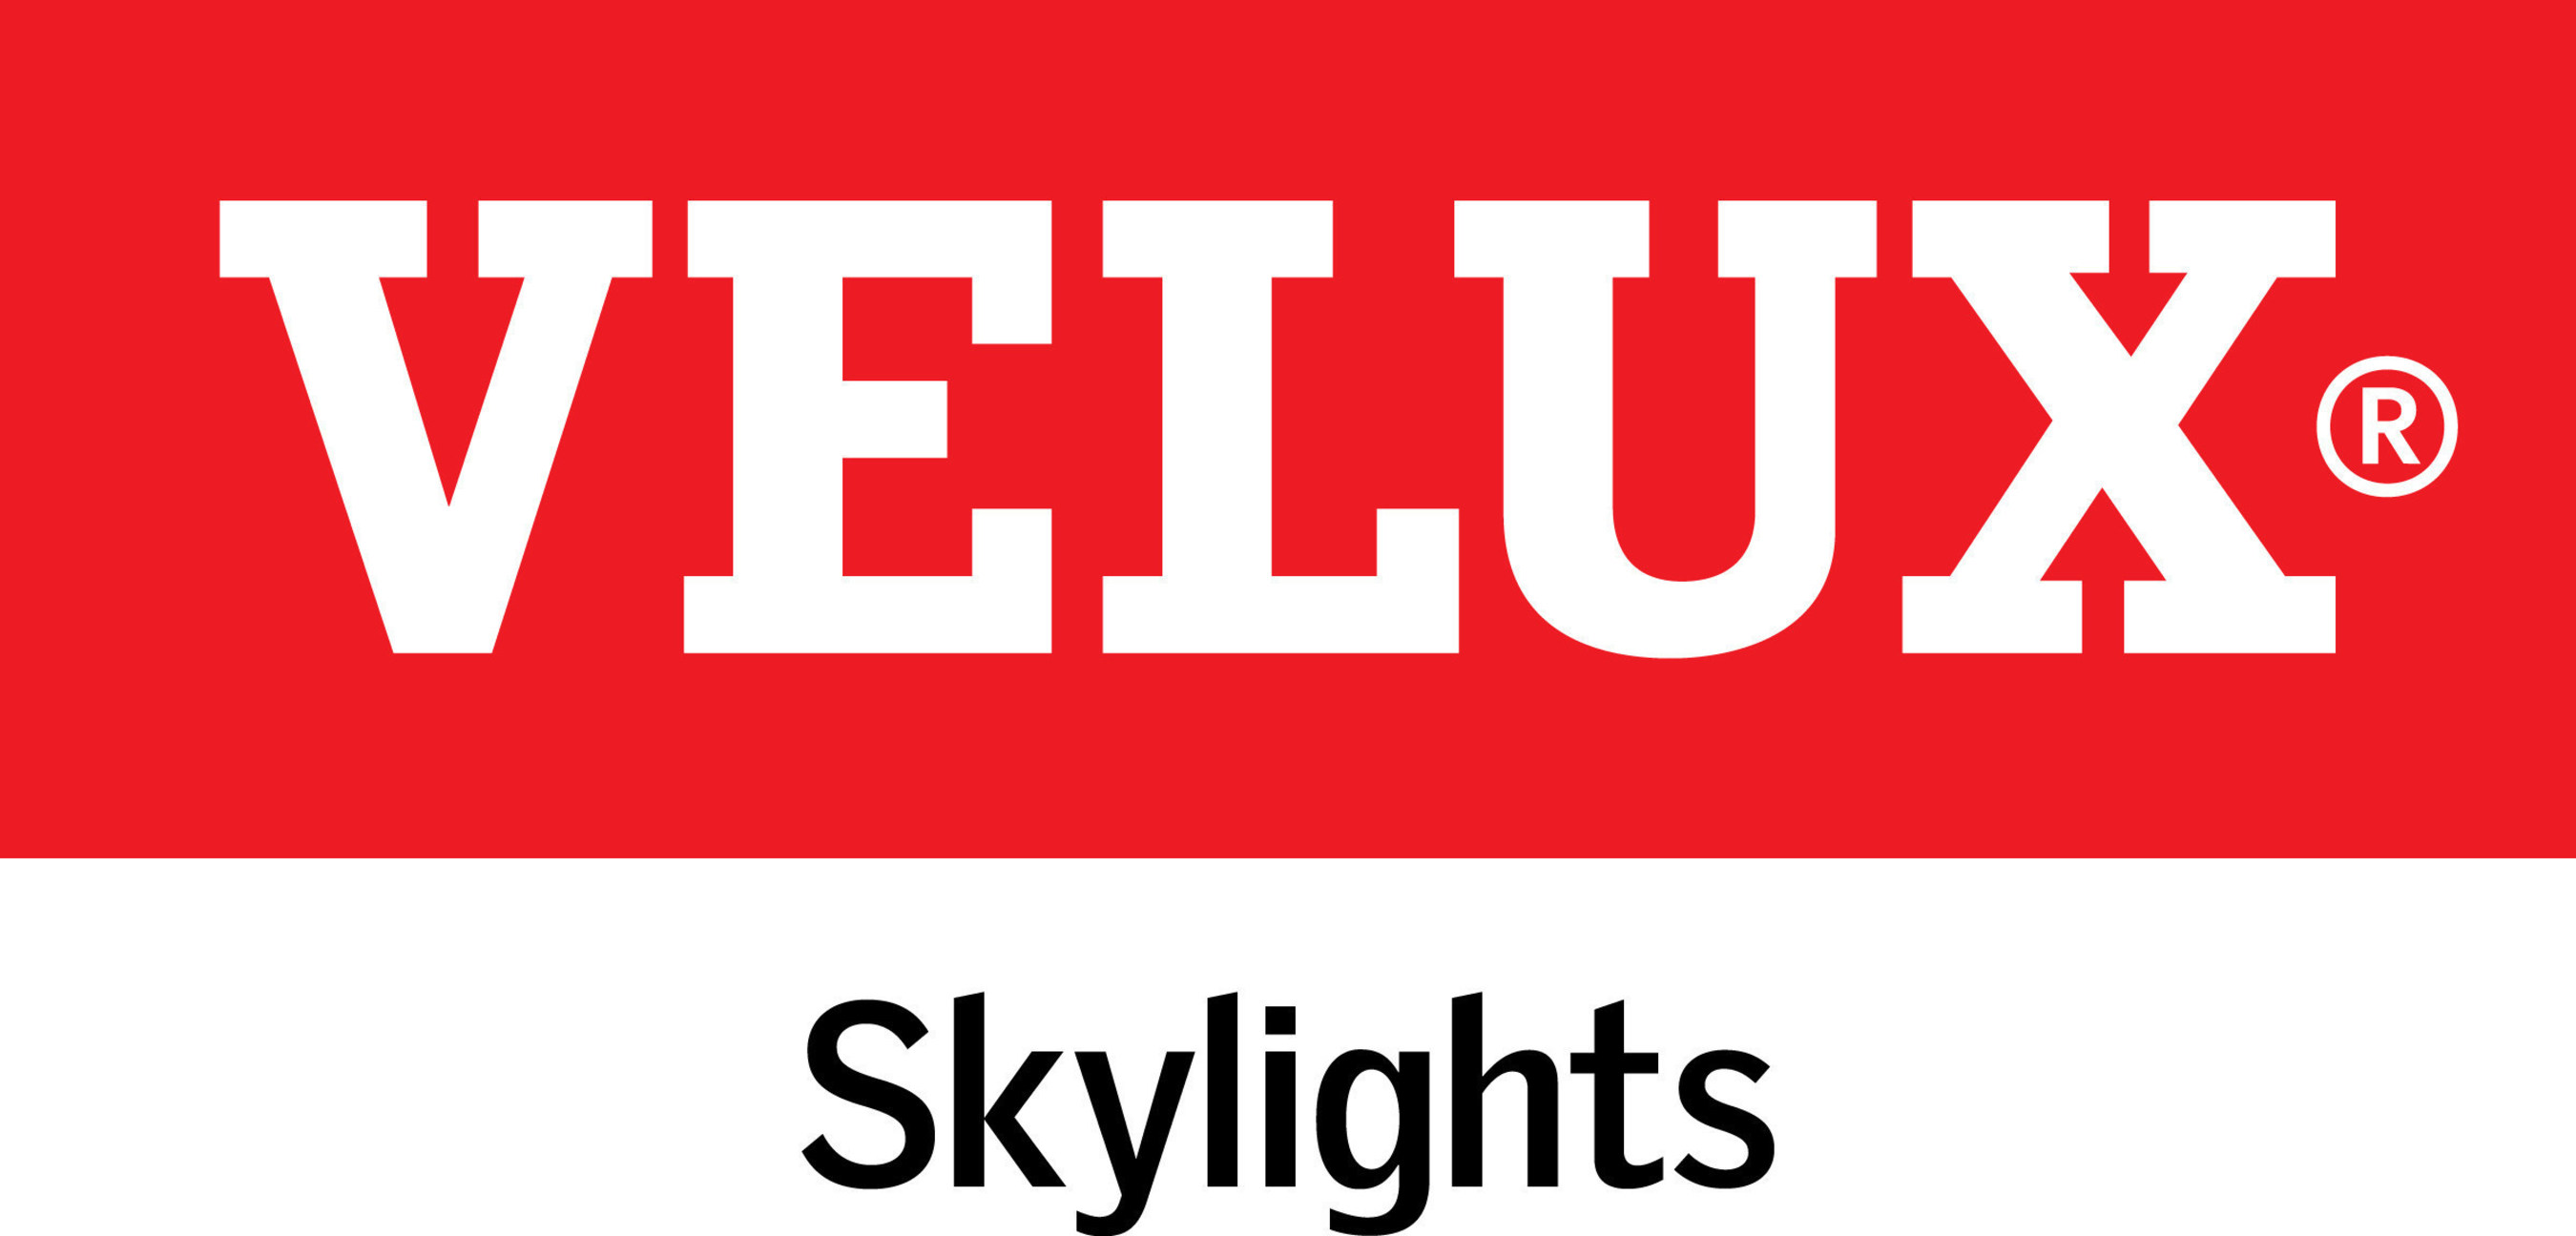 Educational And Informational Resources For Architects From VELUX